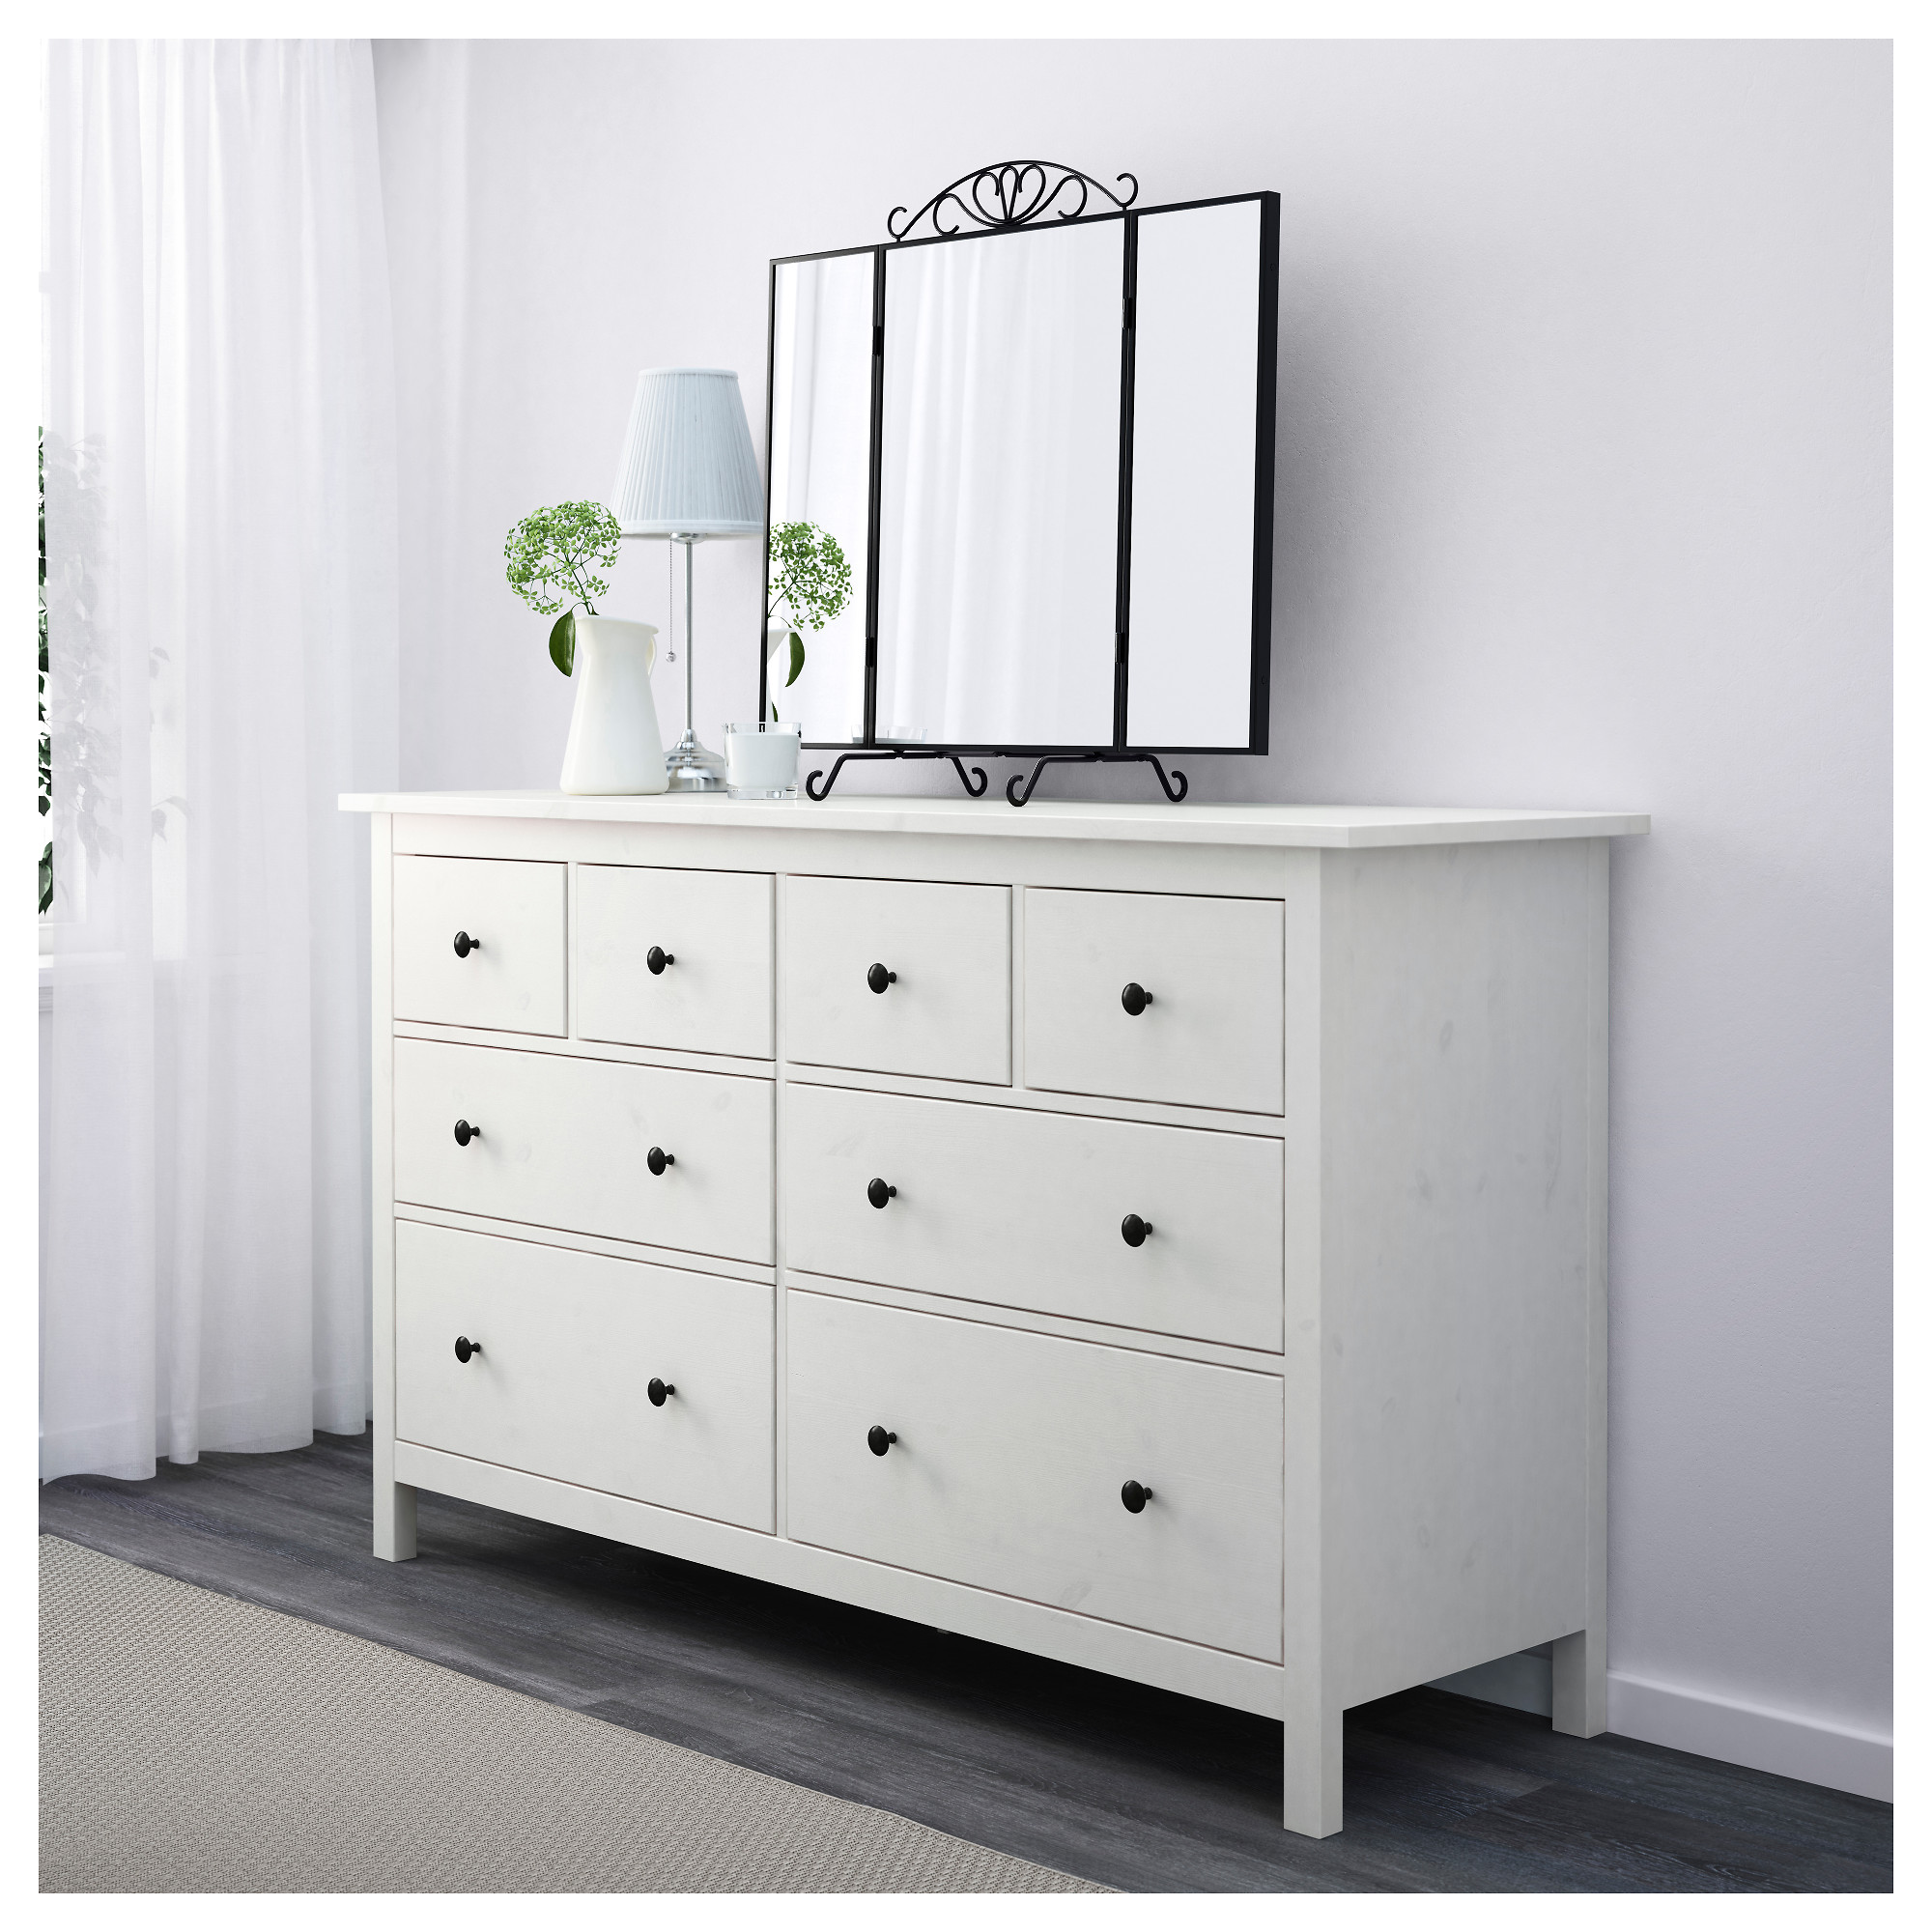 "hemnes 8-drawer dresser - dark gray stained, 63x37 3/8 "" - ikea"